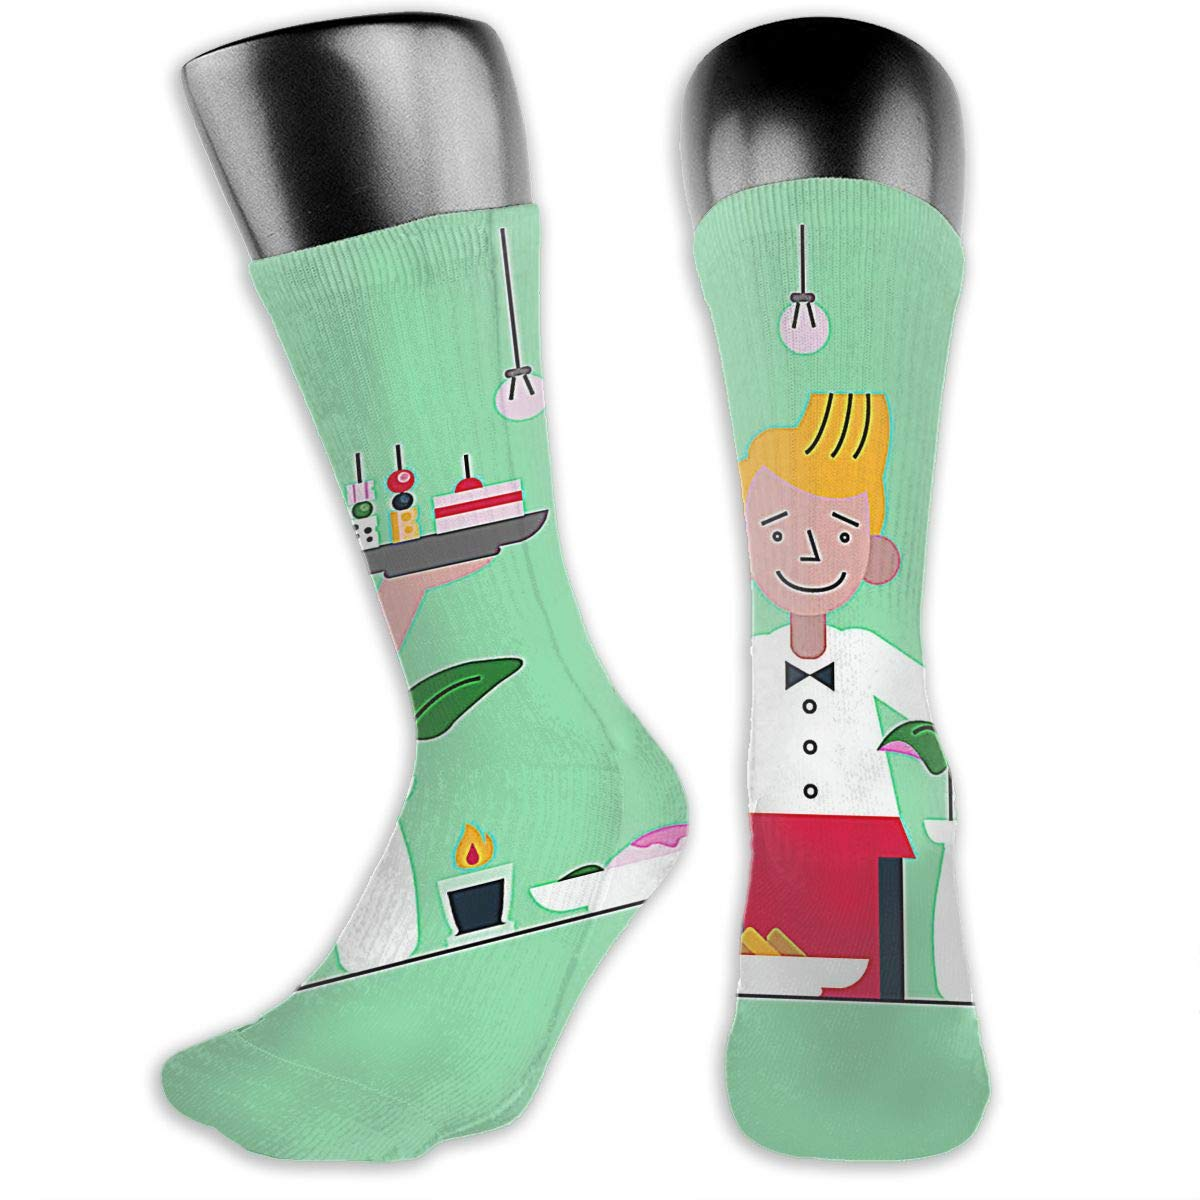 OLGCZM Waiter Serving AppetizersFlat Illustration Men Womens Thin High Ankle Casual Socks Fit Outdoor Hiking Trail